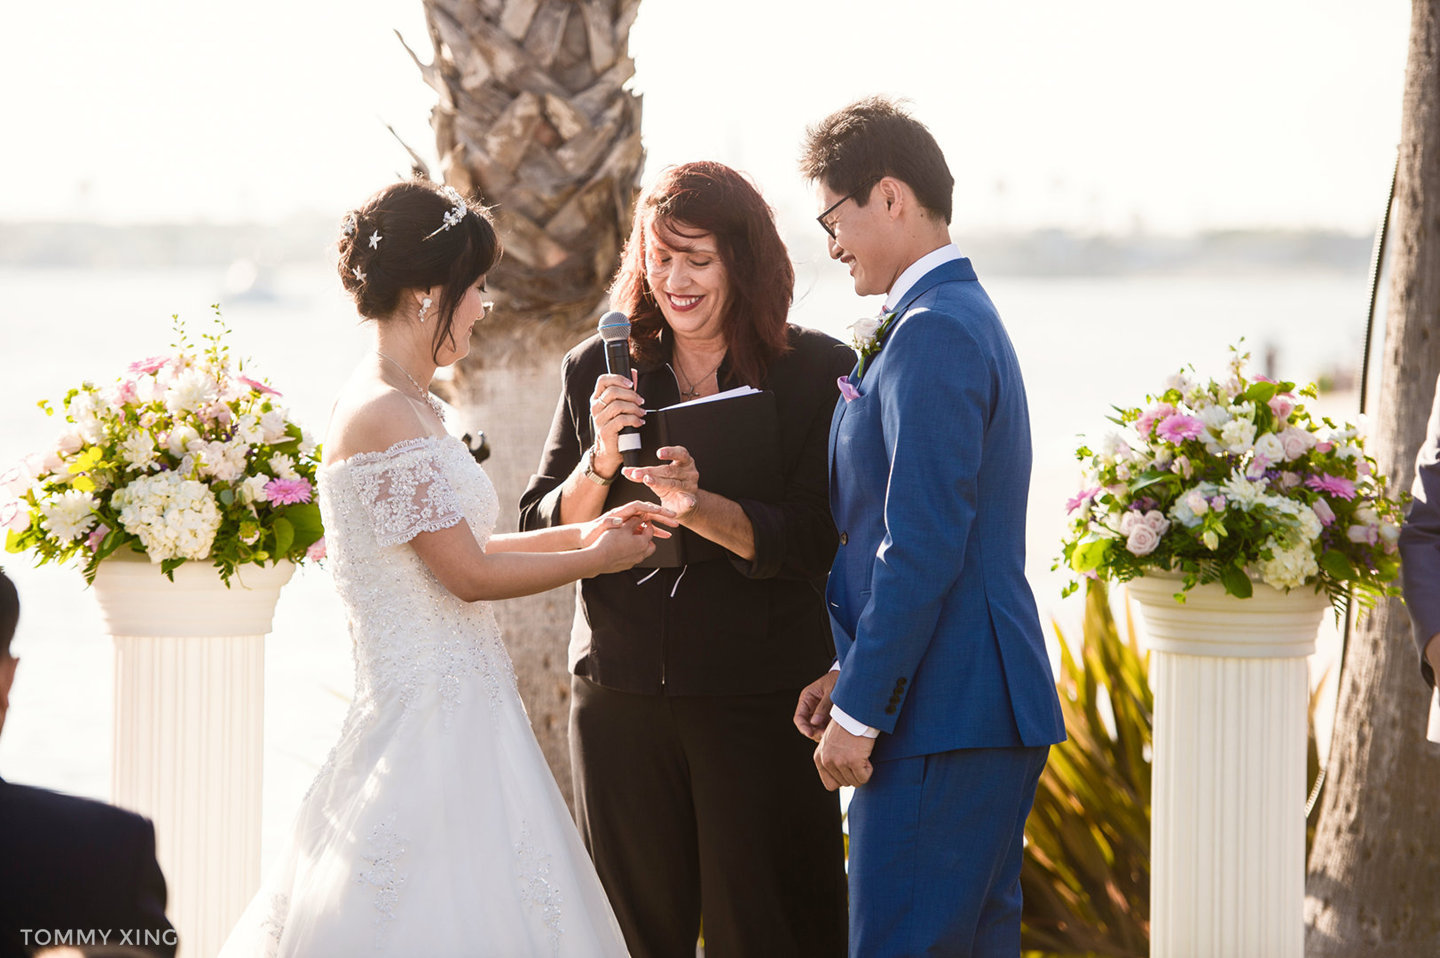 Paradise Point Resort Wedding Xiaolu & Bin San Diego 圣地亚哥婚礼摄影跟拍 Tommy Xing Photography 洛杉矶婚礼婚纱照摄影师 156.jpg